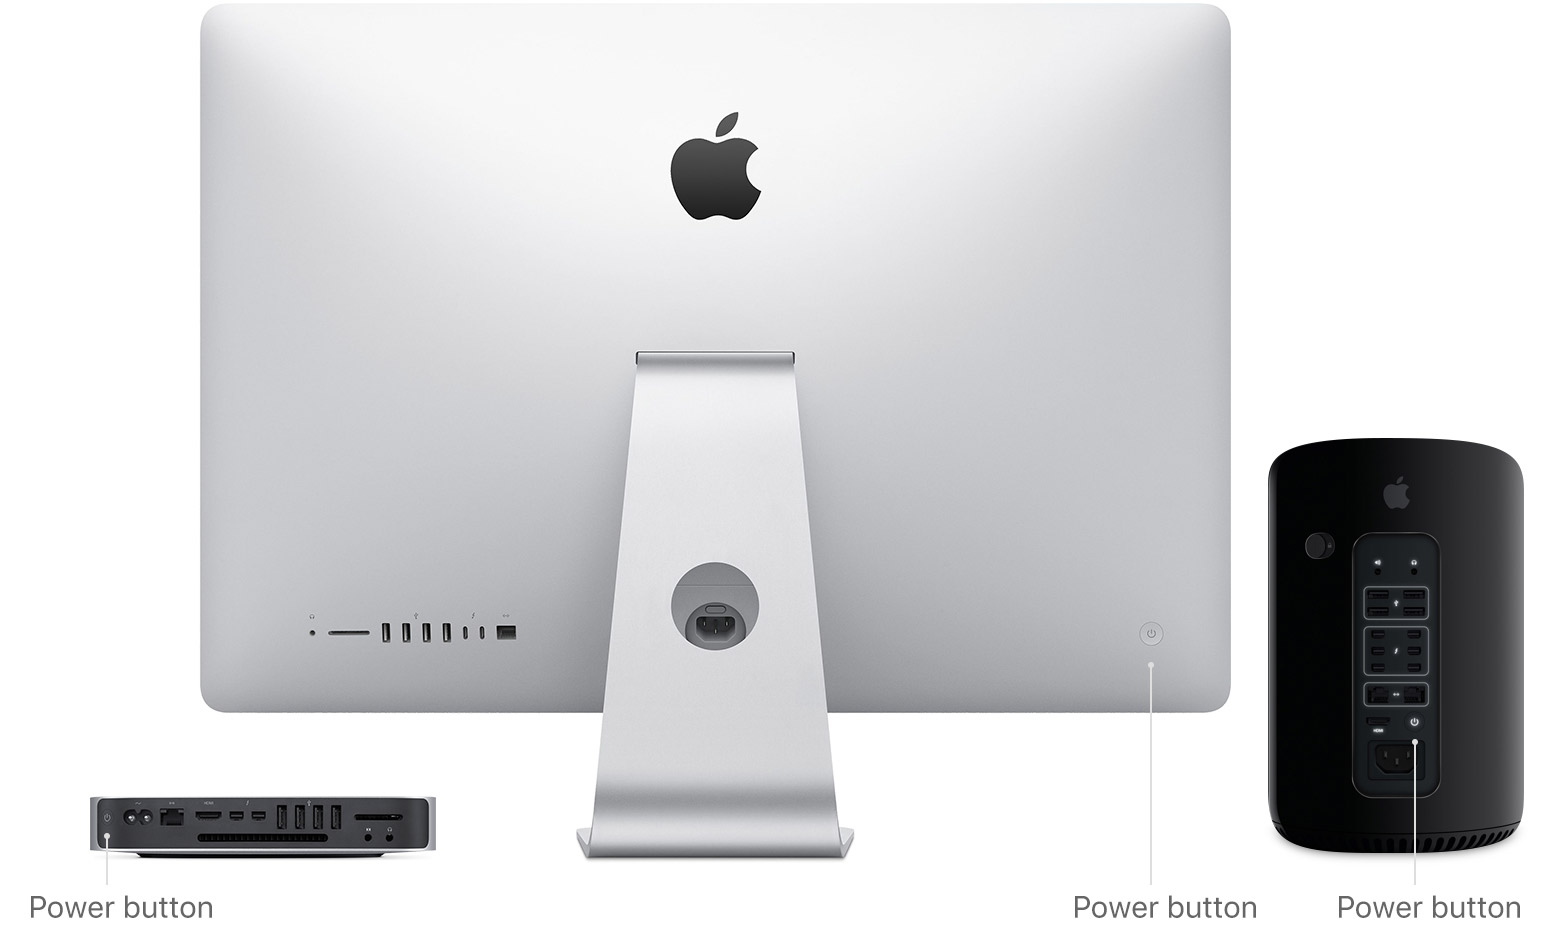 How to Turn On a Mac Computer